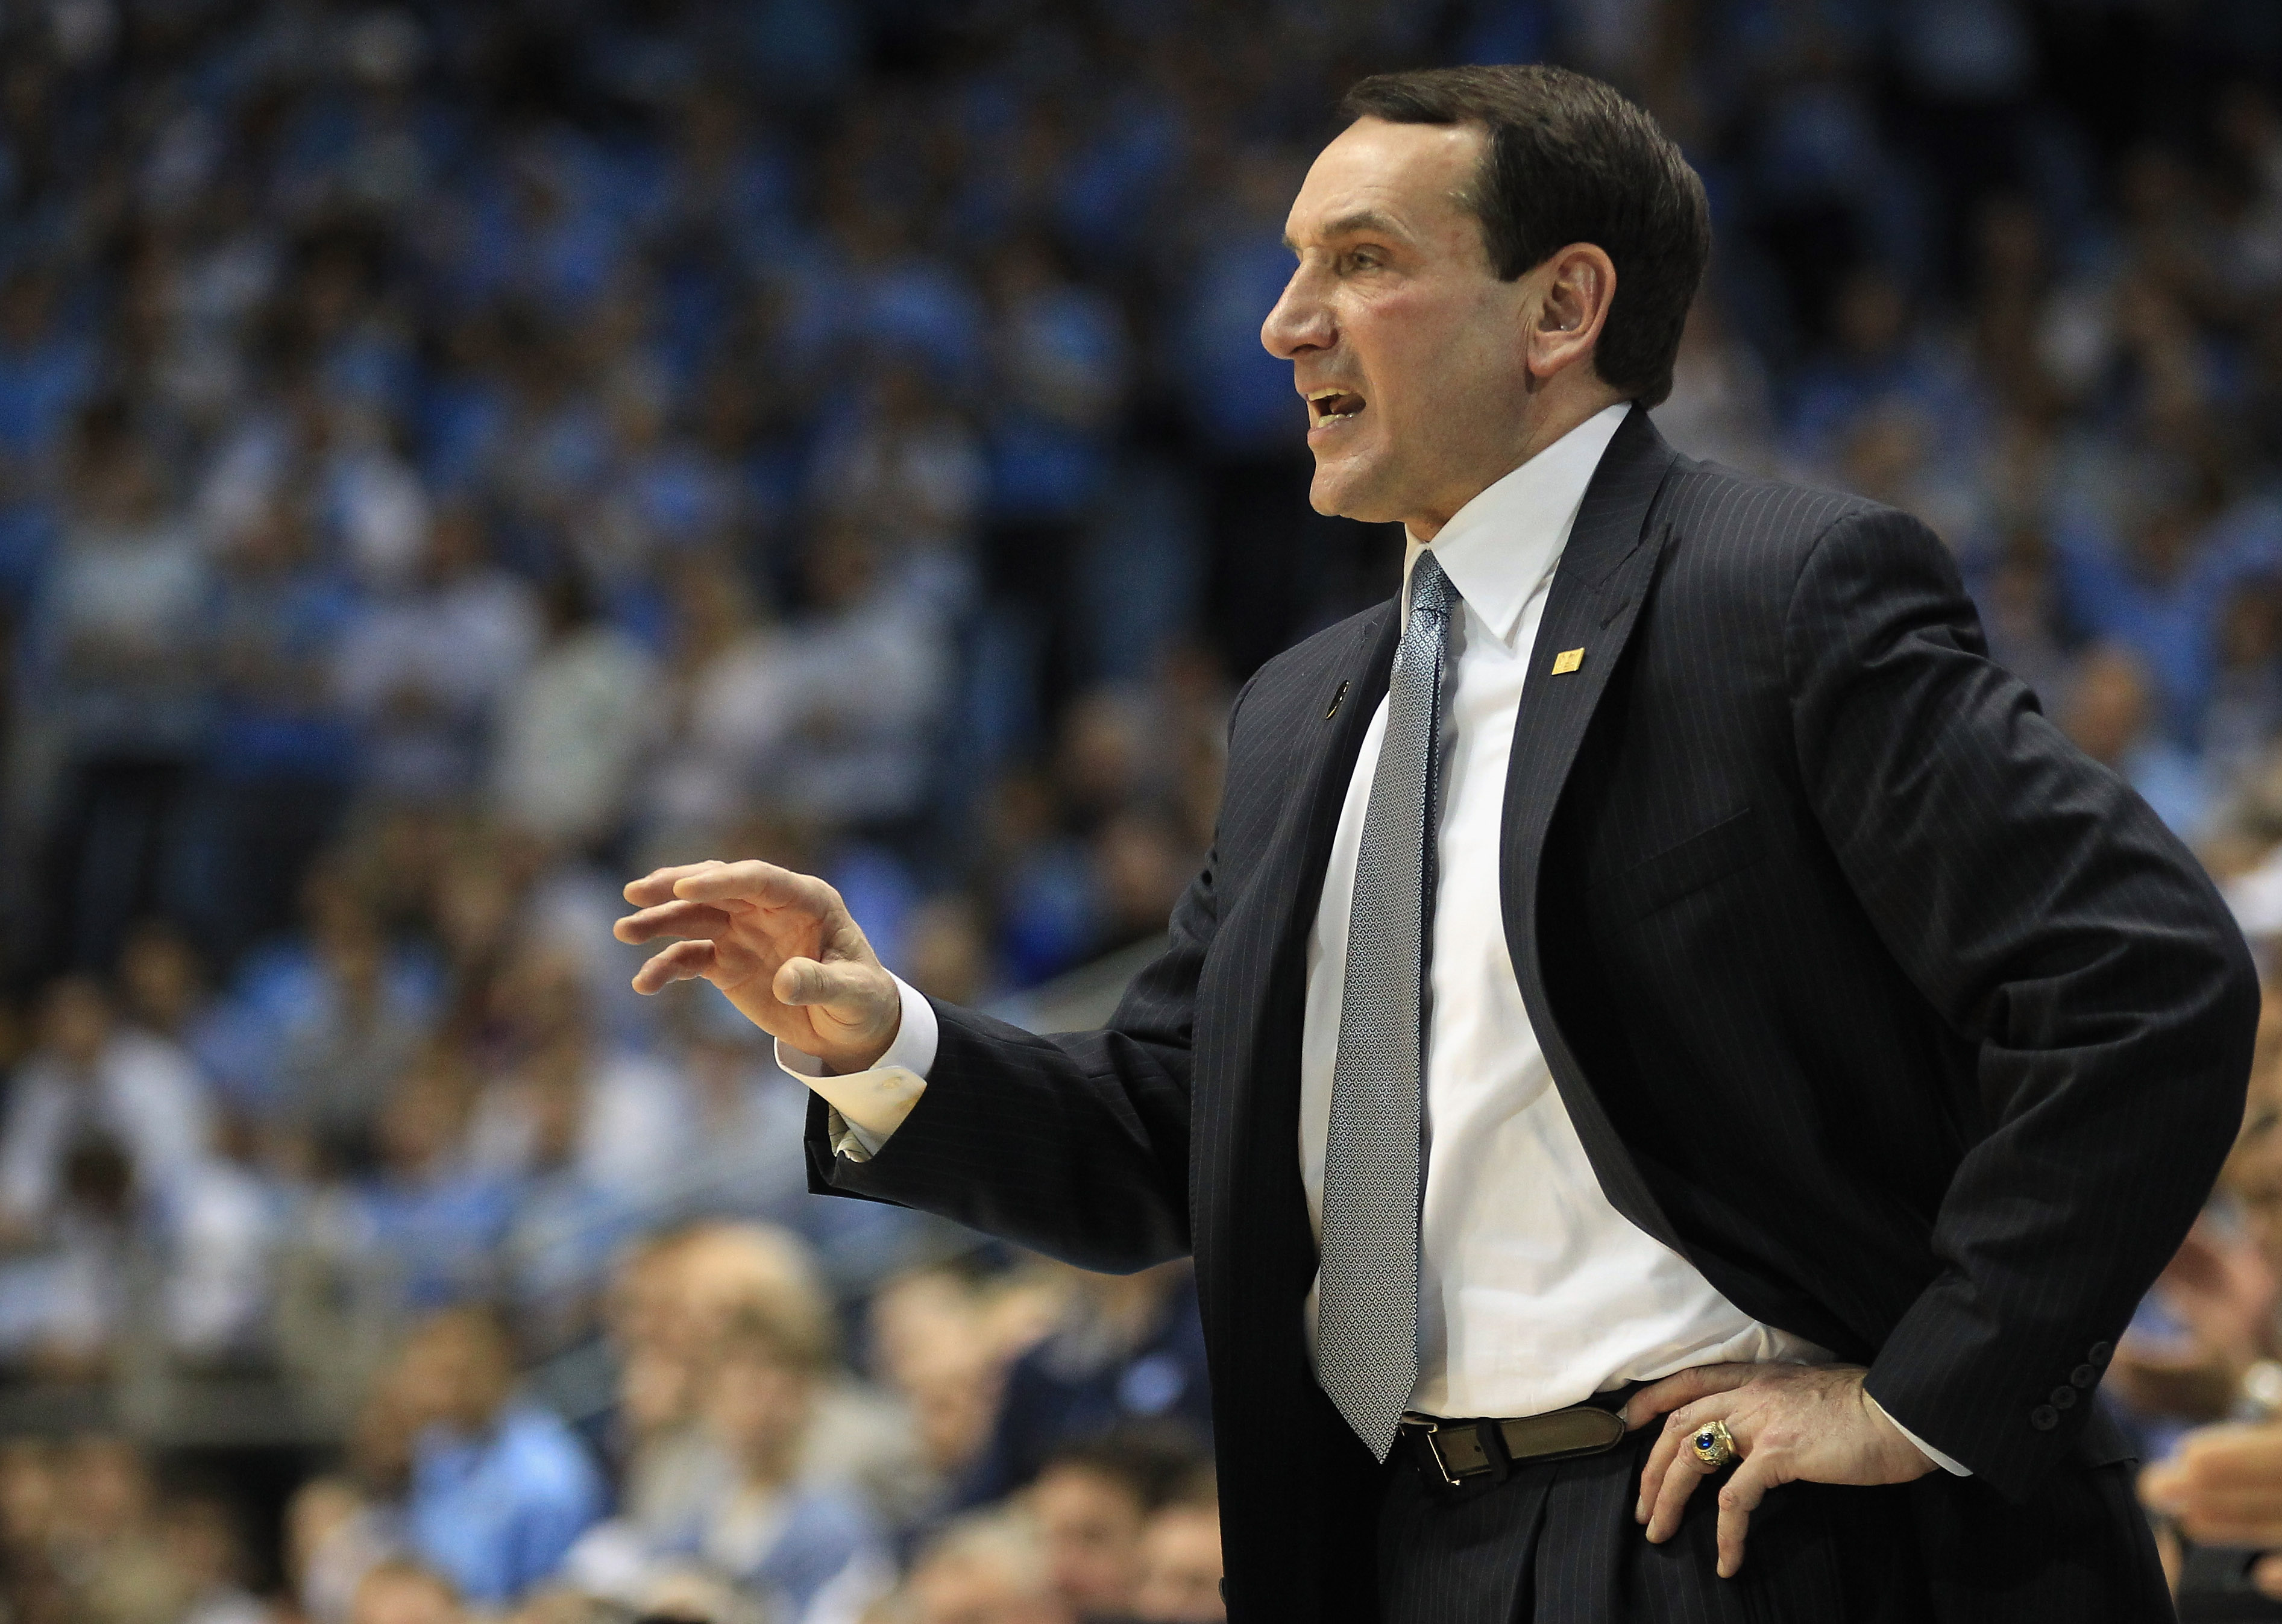 CHAPEL HILL, NC - MARCH 05:  Head coach Mike Krzyzewski of the Duke Blue Devils yells to his team against the North Carolina Tar Heels during their game at the Dean E. Smith Center on March 5, 2011 in Chapel Hill, North Carolina.  (Photo by Streeter Lecka